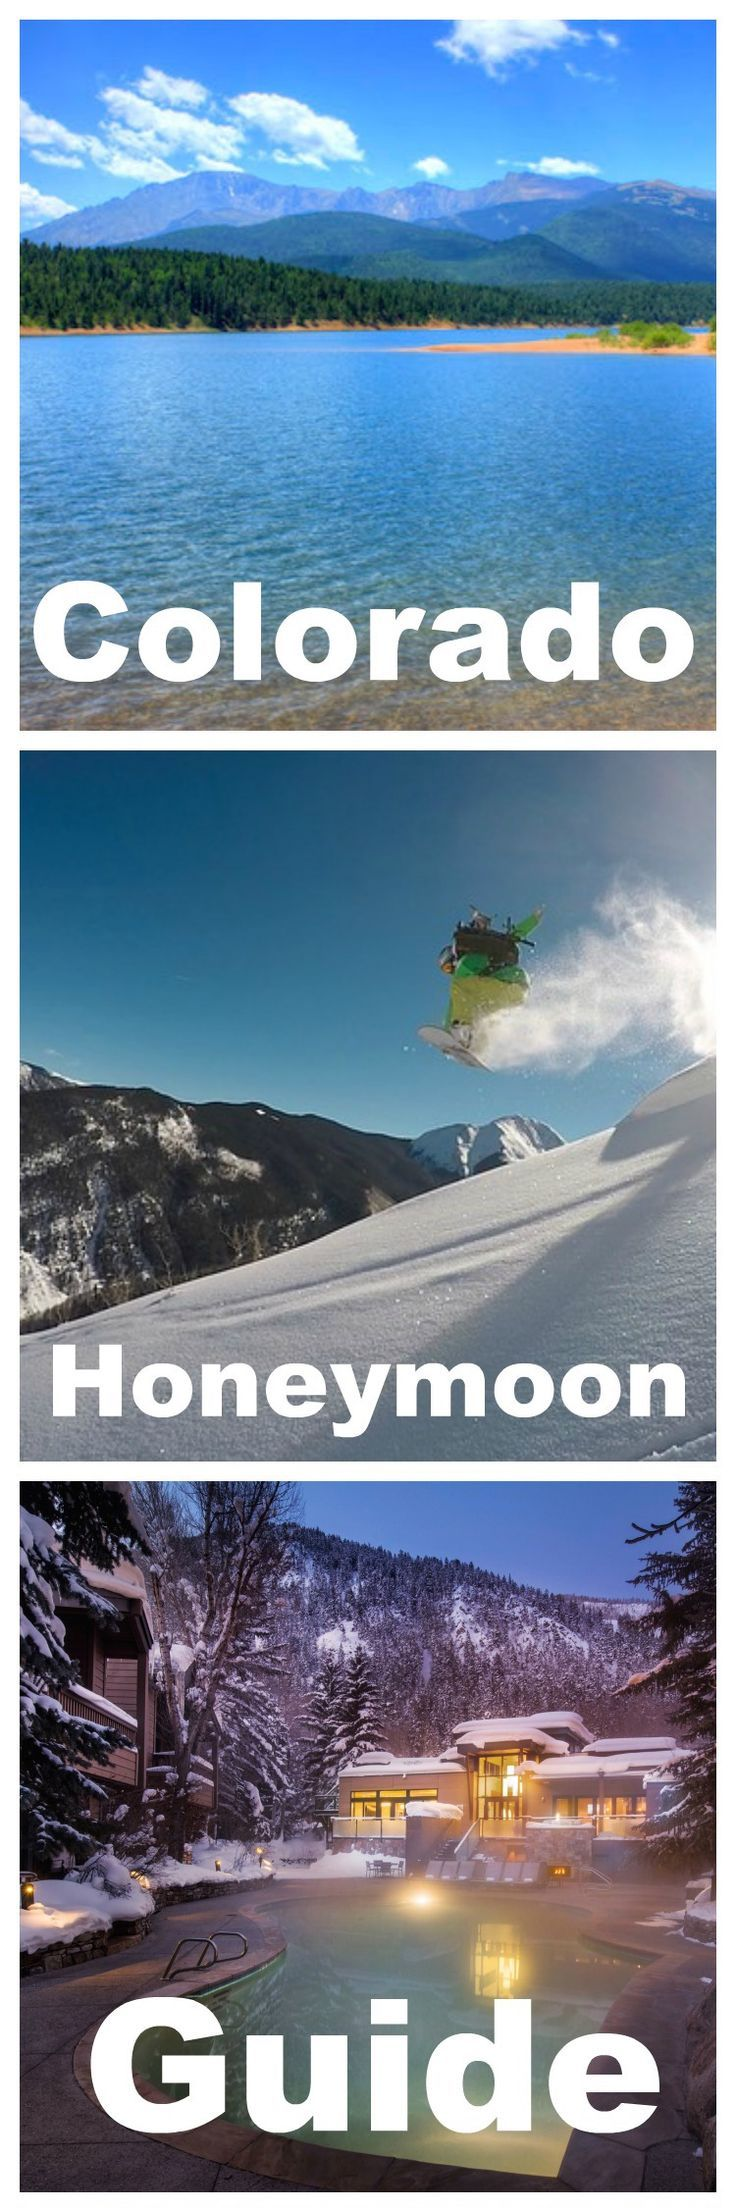 Colorado offers honeymooners a variety of experiences and options without the need of a passport. Whether looking for a ski retreat in the winter or a rocky mountain adventure in the summer, Colorado can provide you the perfect itinerary to start off your married life.